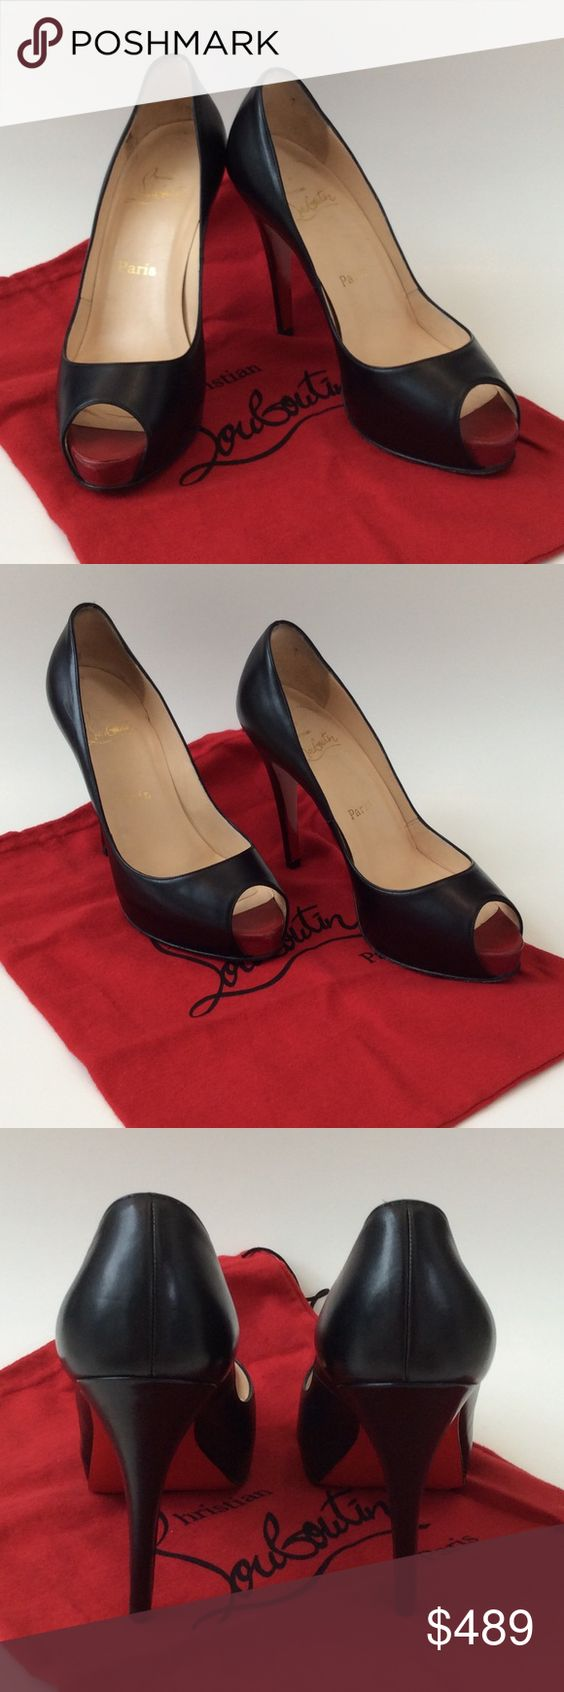 """LOUBOUTIN BLACK LEATHER PEEP TOE PUMPPS SIZE 7.5 Gorgeous Christian Louboutin Very Prive peep toe stiletto heels with unmistakable signature red at the toe. Excellent condition! Size 7.5 but runs small, so 7 would be perfect. 4.5"""" heel height with a 3/4"""" platform for added comfort. This Very Prive is super popular and continue to go up in price. Dust bags included and extra heel tips. Price is firm due to the popularity of these shoes. Christian Louboutin Shoes Heels"""